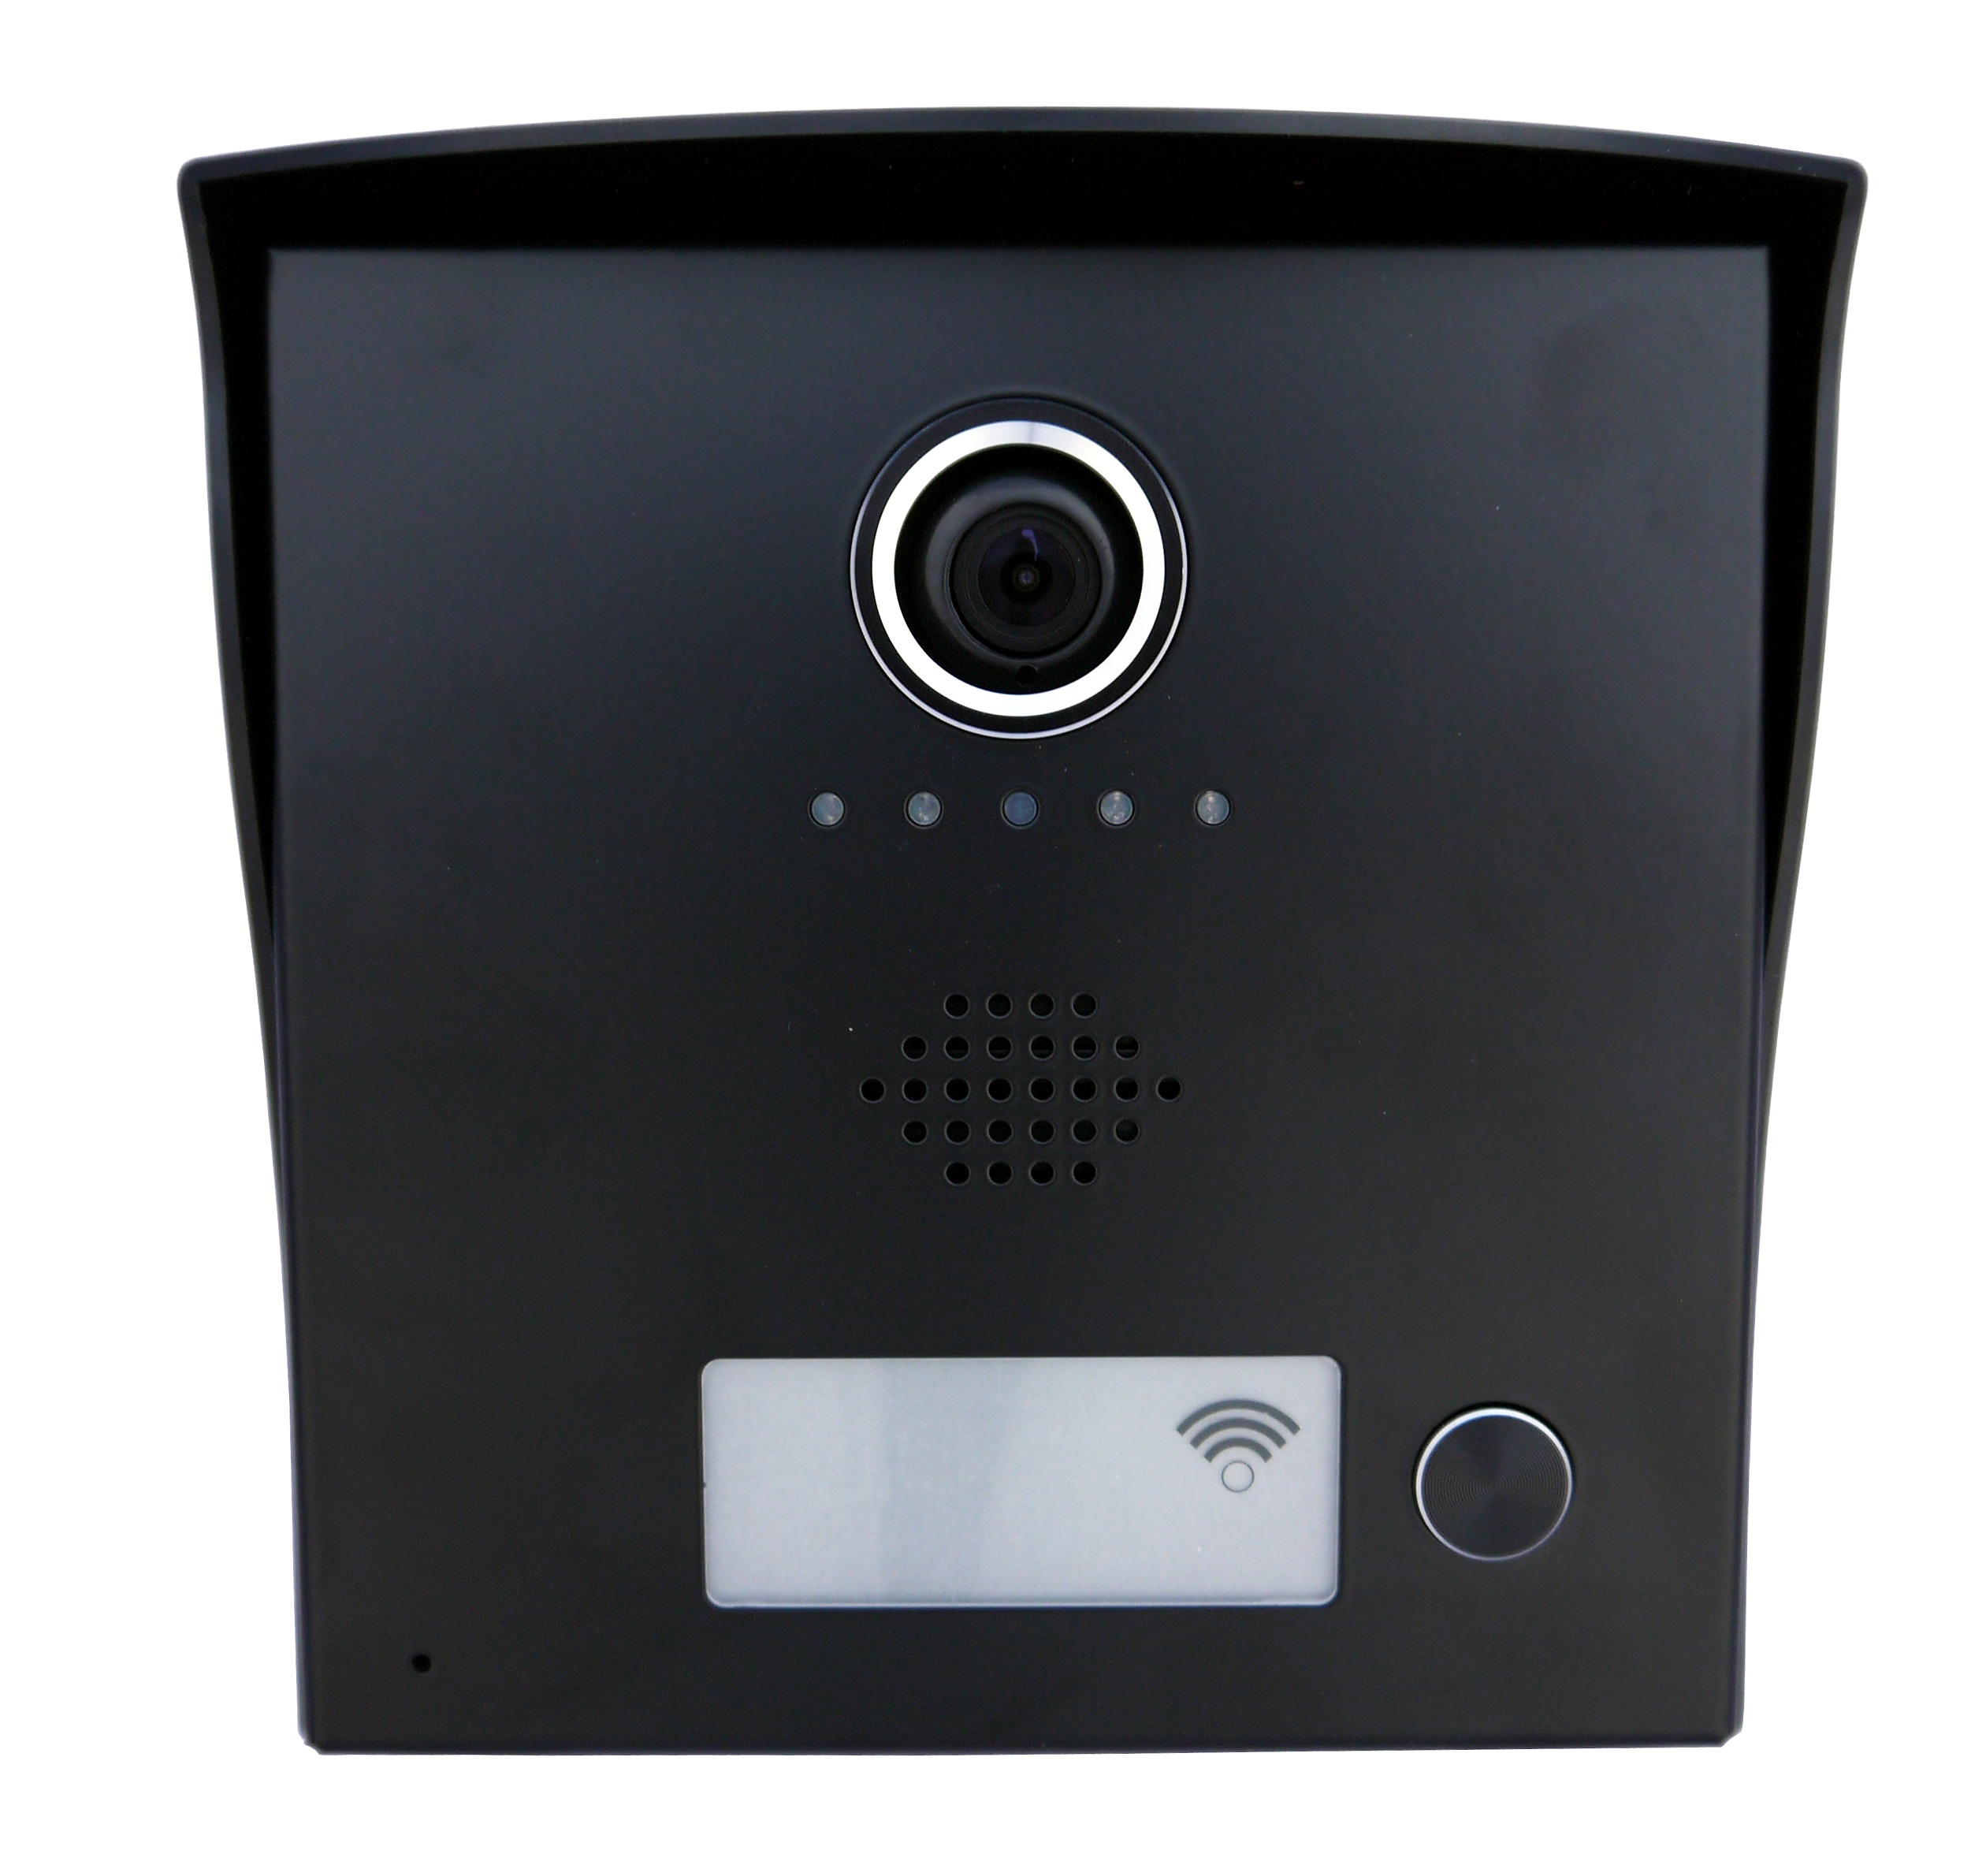 Sykik EYE Wi-Fi Video Door Bell, see who is at the door when the